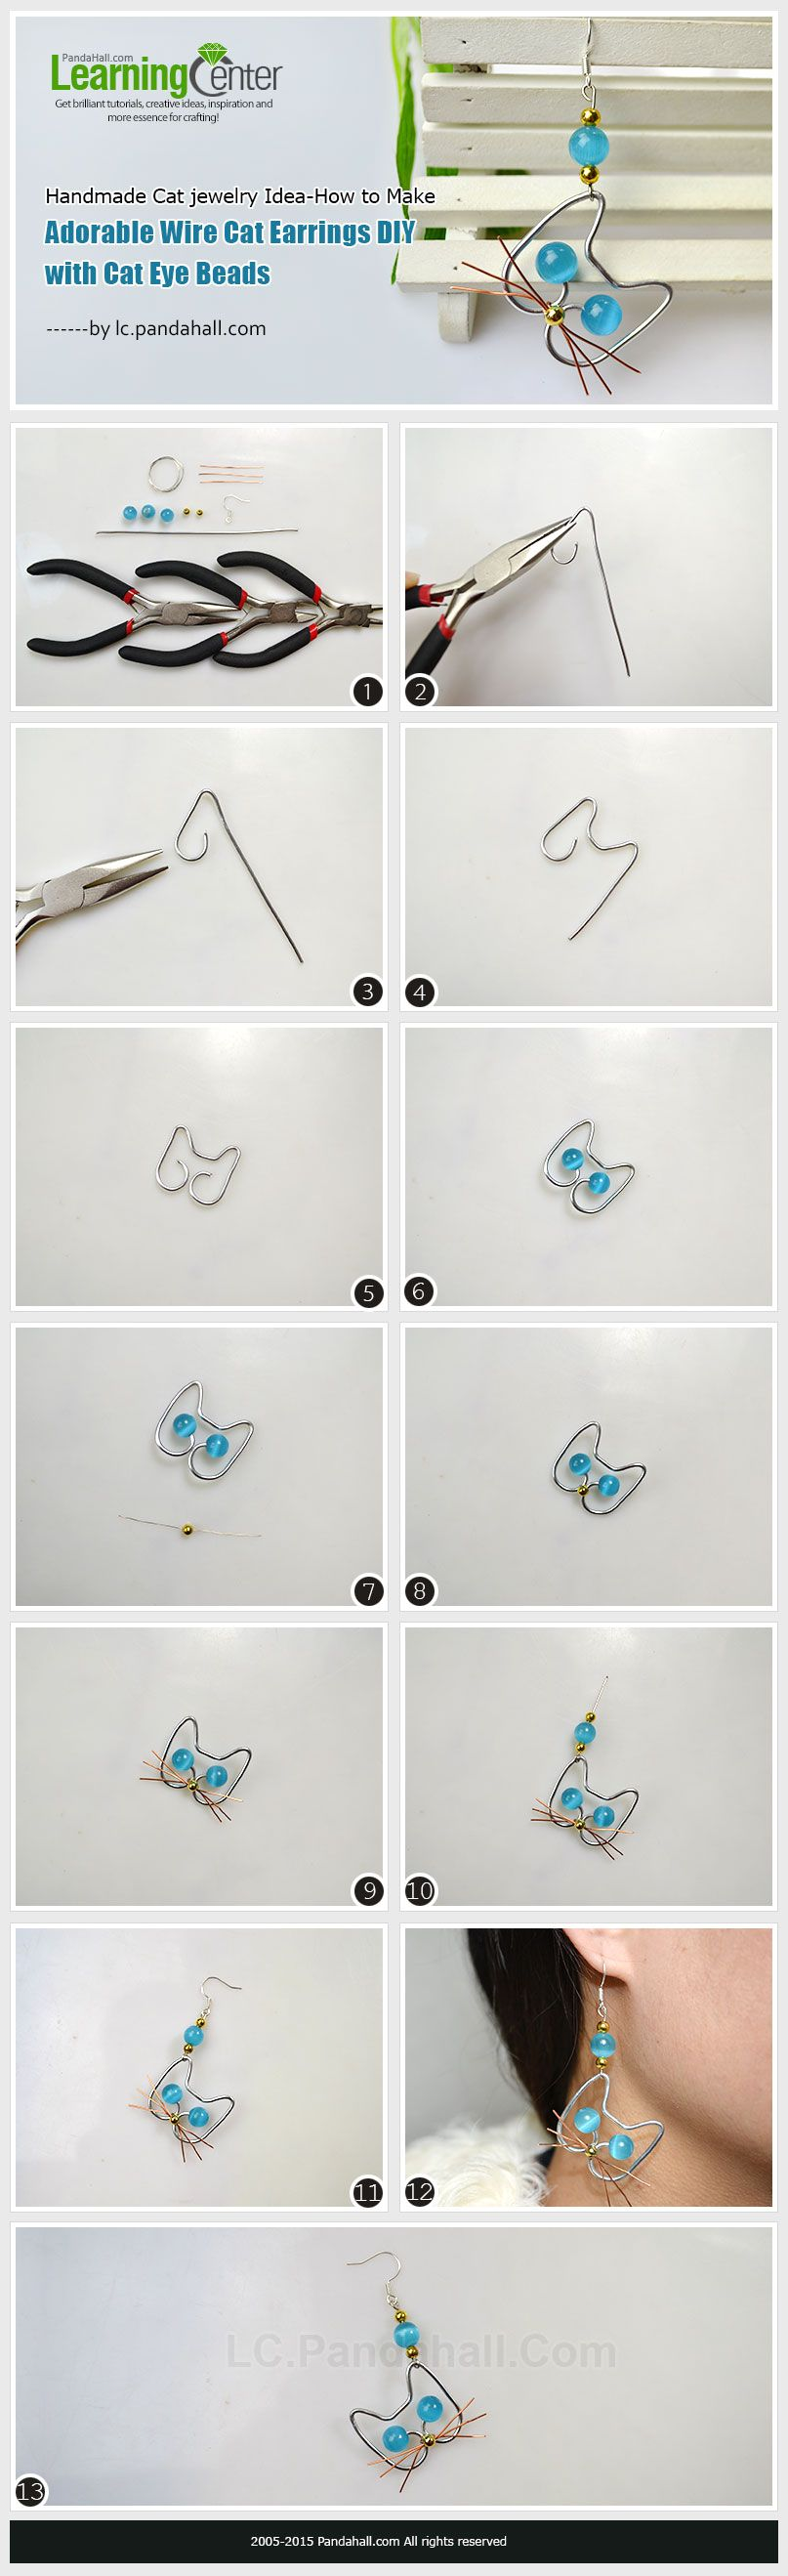 Handmade Cat jewelry Idea-How to Make Adorable Wire Cat Earrings DIY ...